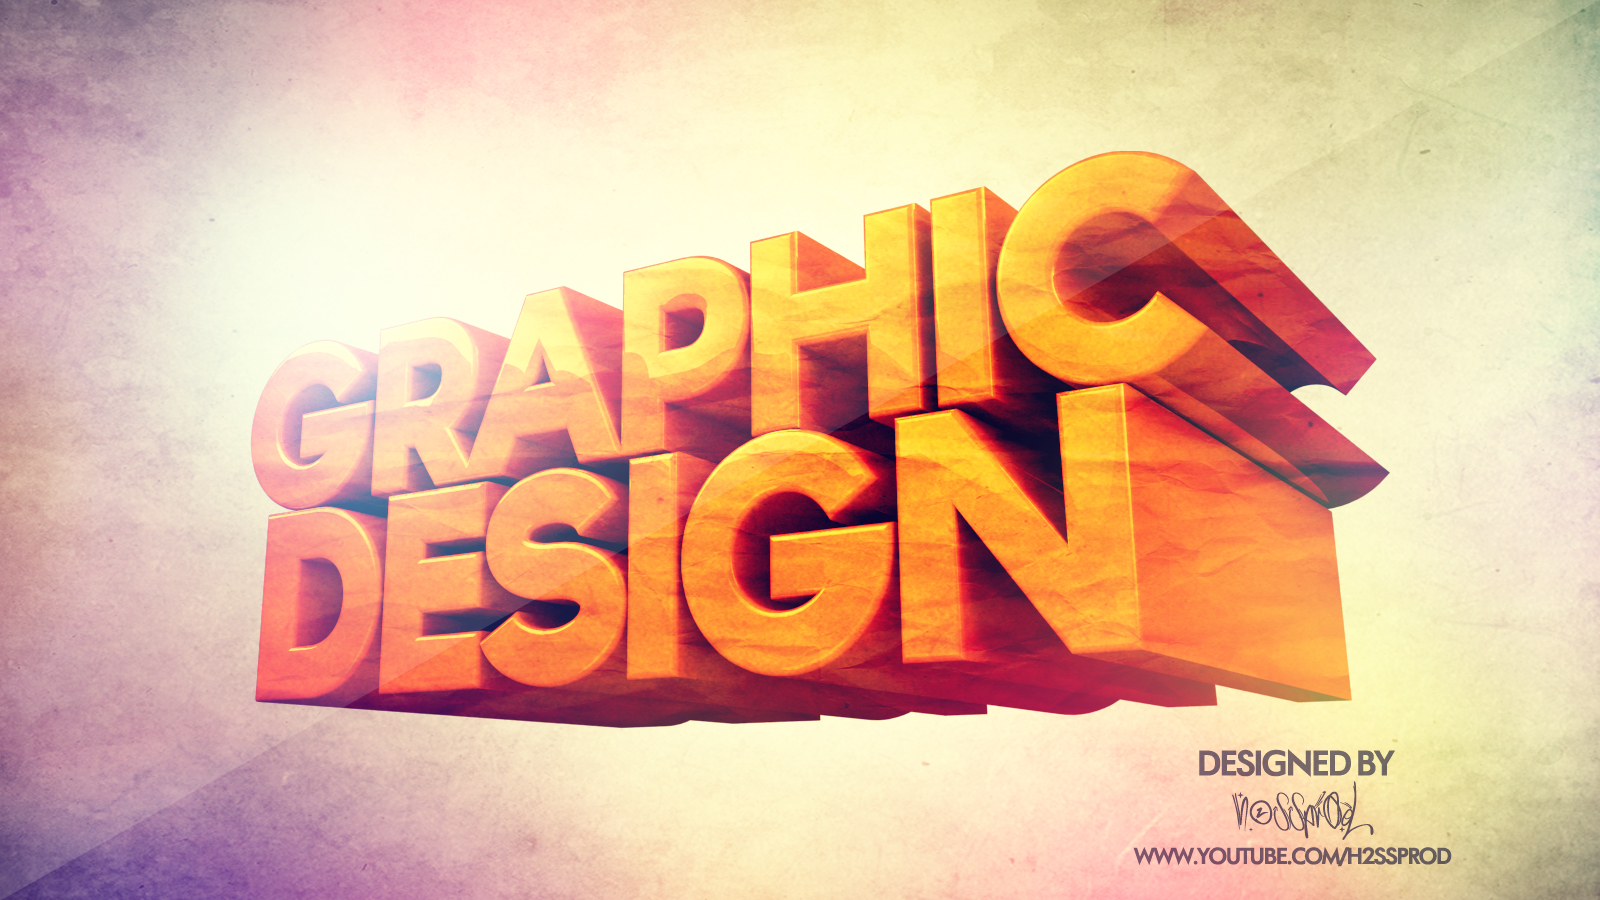 WALLPAPER-GRAPHIC-DESIGN-3D-BY-H2SSPROD by H2SSPROD on ...